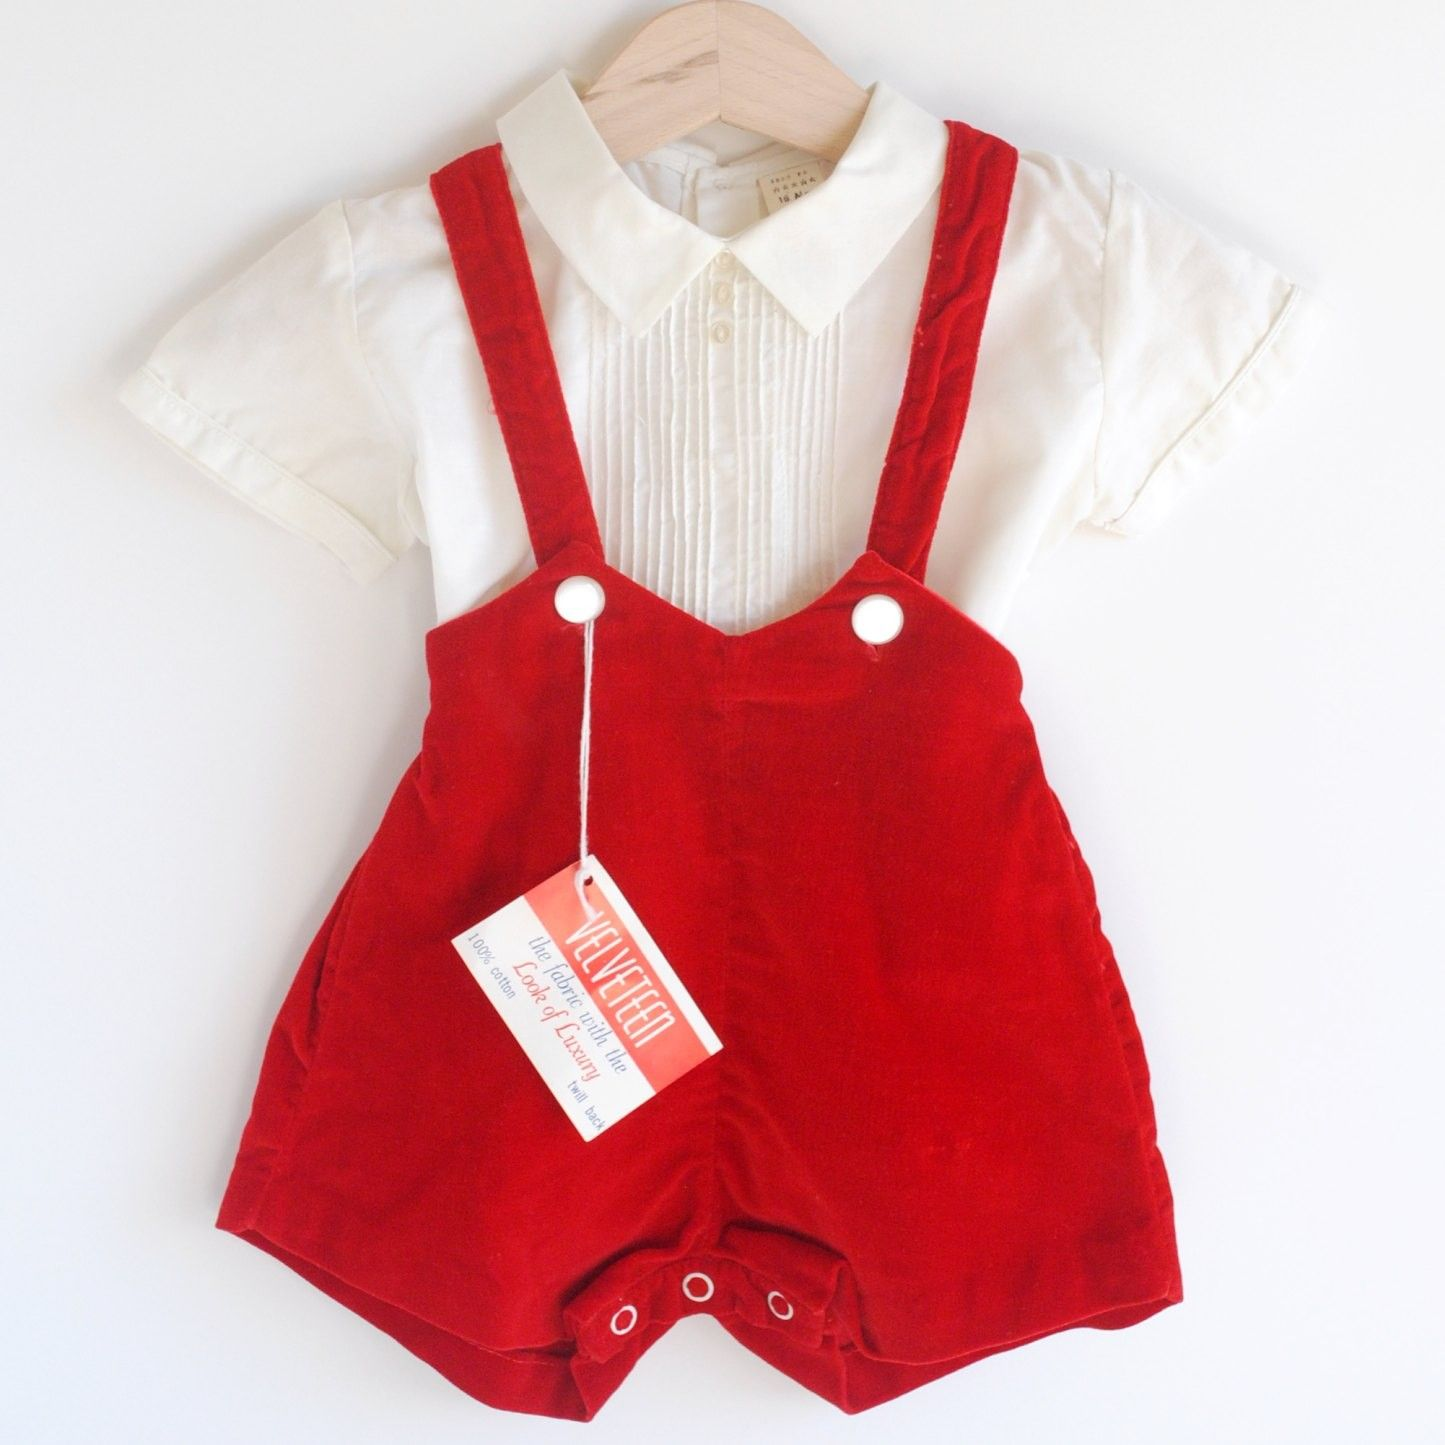 Vintage Baby Toddler Boy S Outfit I Want This For My